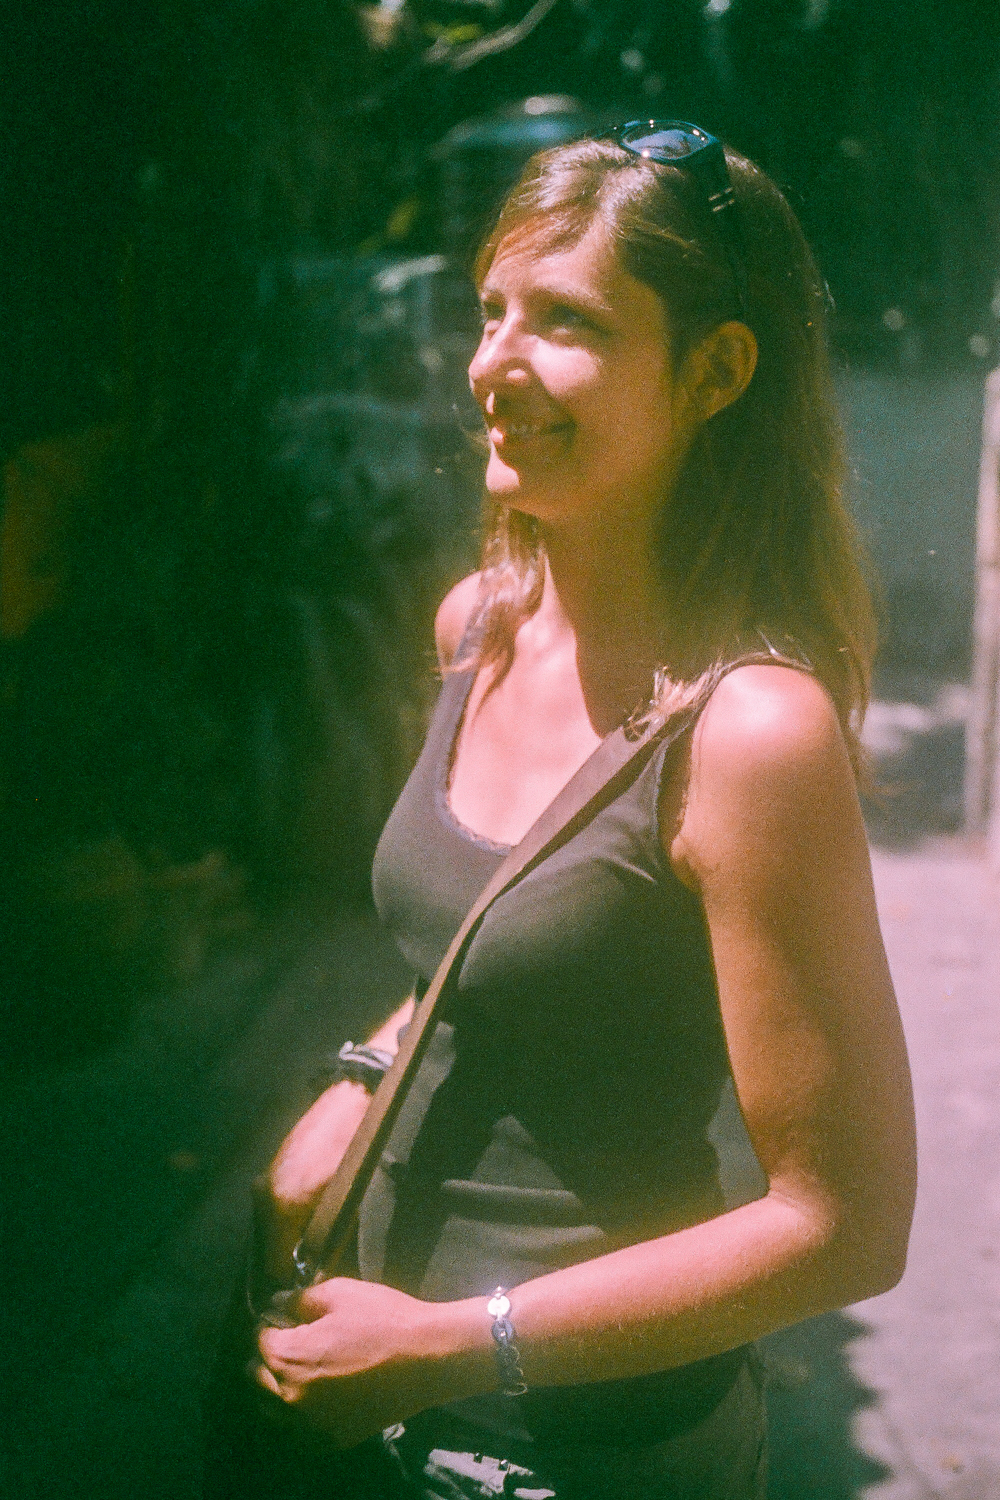 Franziska on the streets of Chiang Mai.